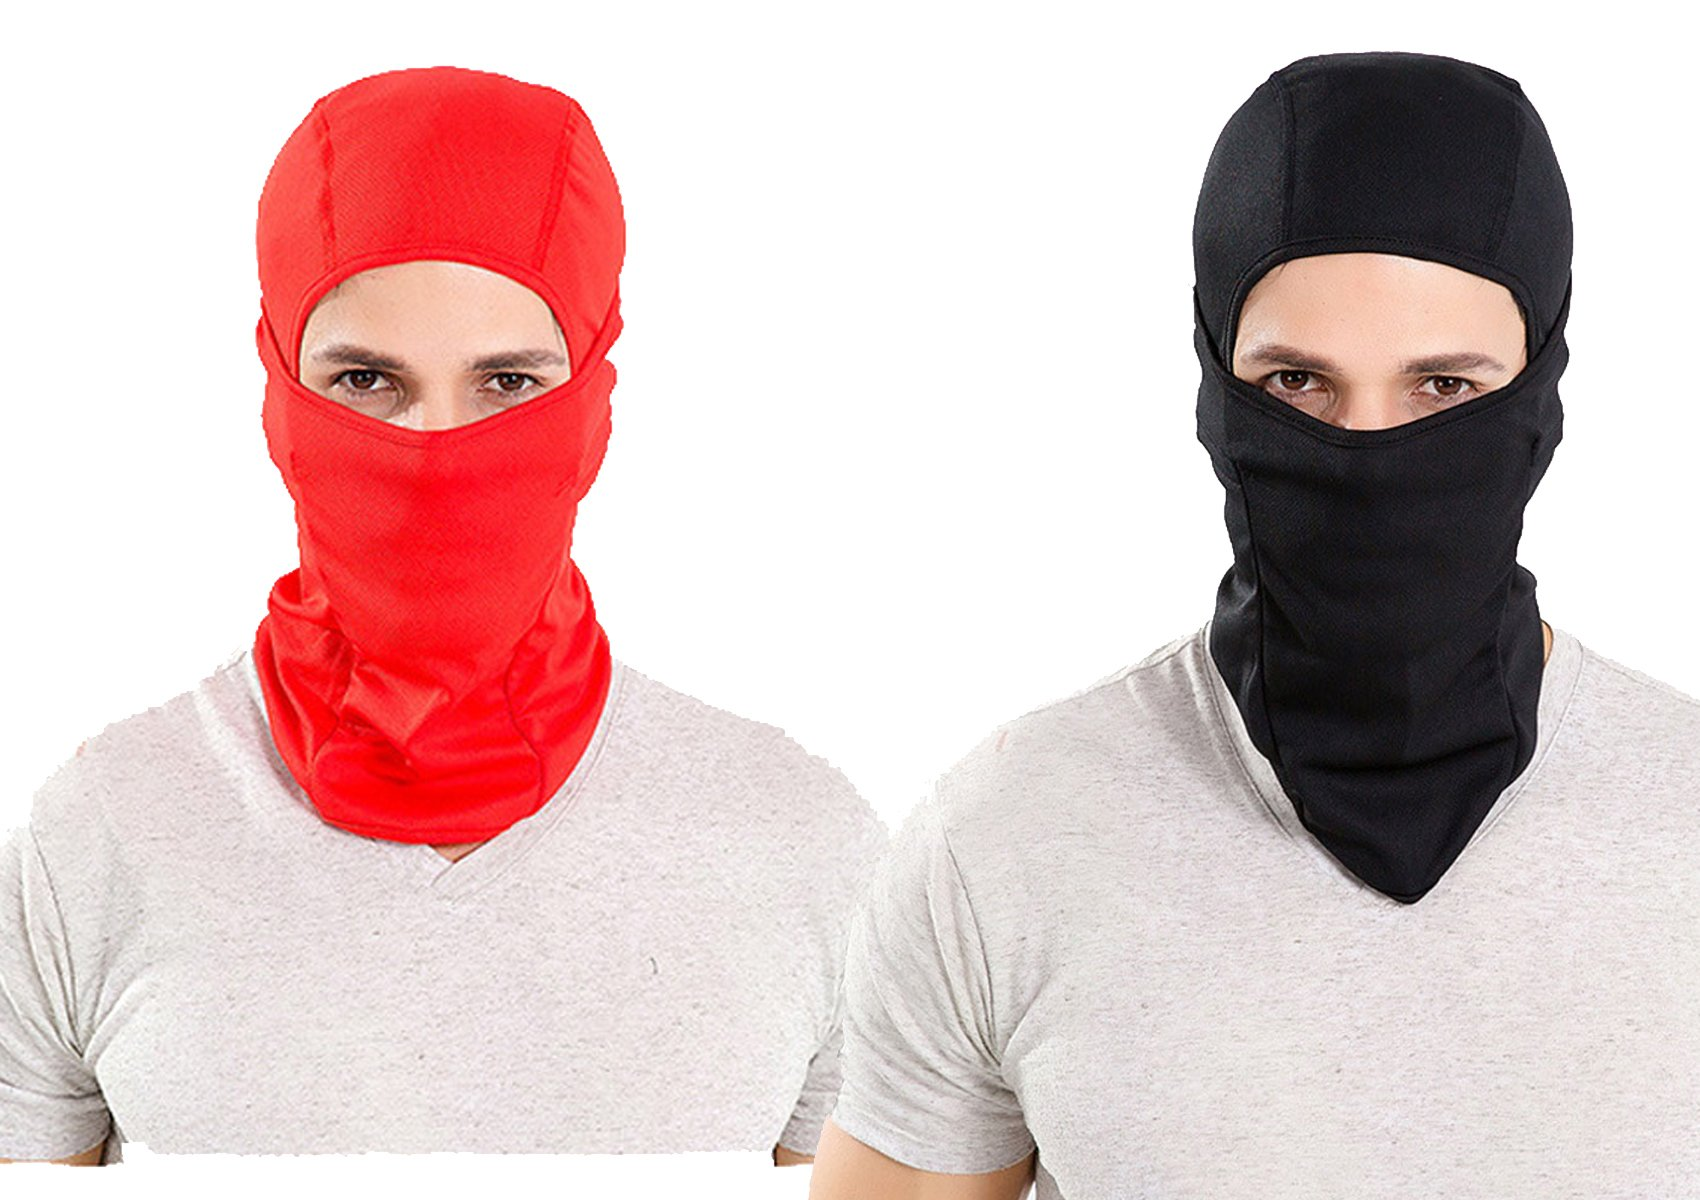 Leories Balaclava Motorcycle Tactical Skiing Face Mask Black/Red